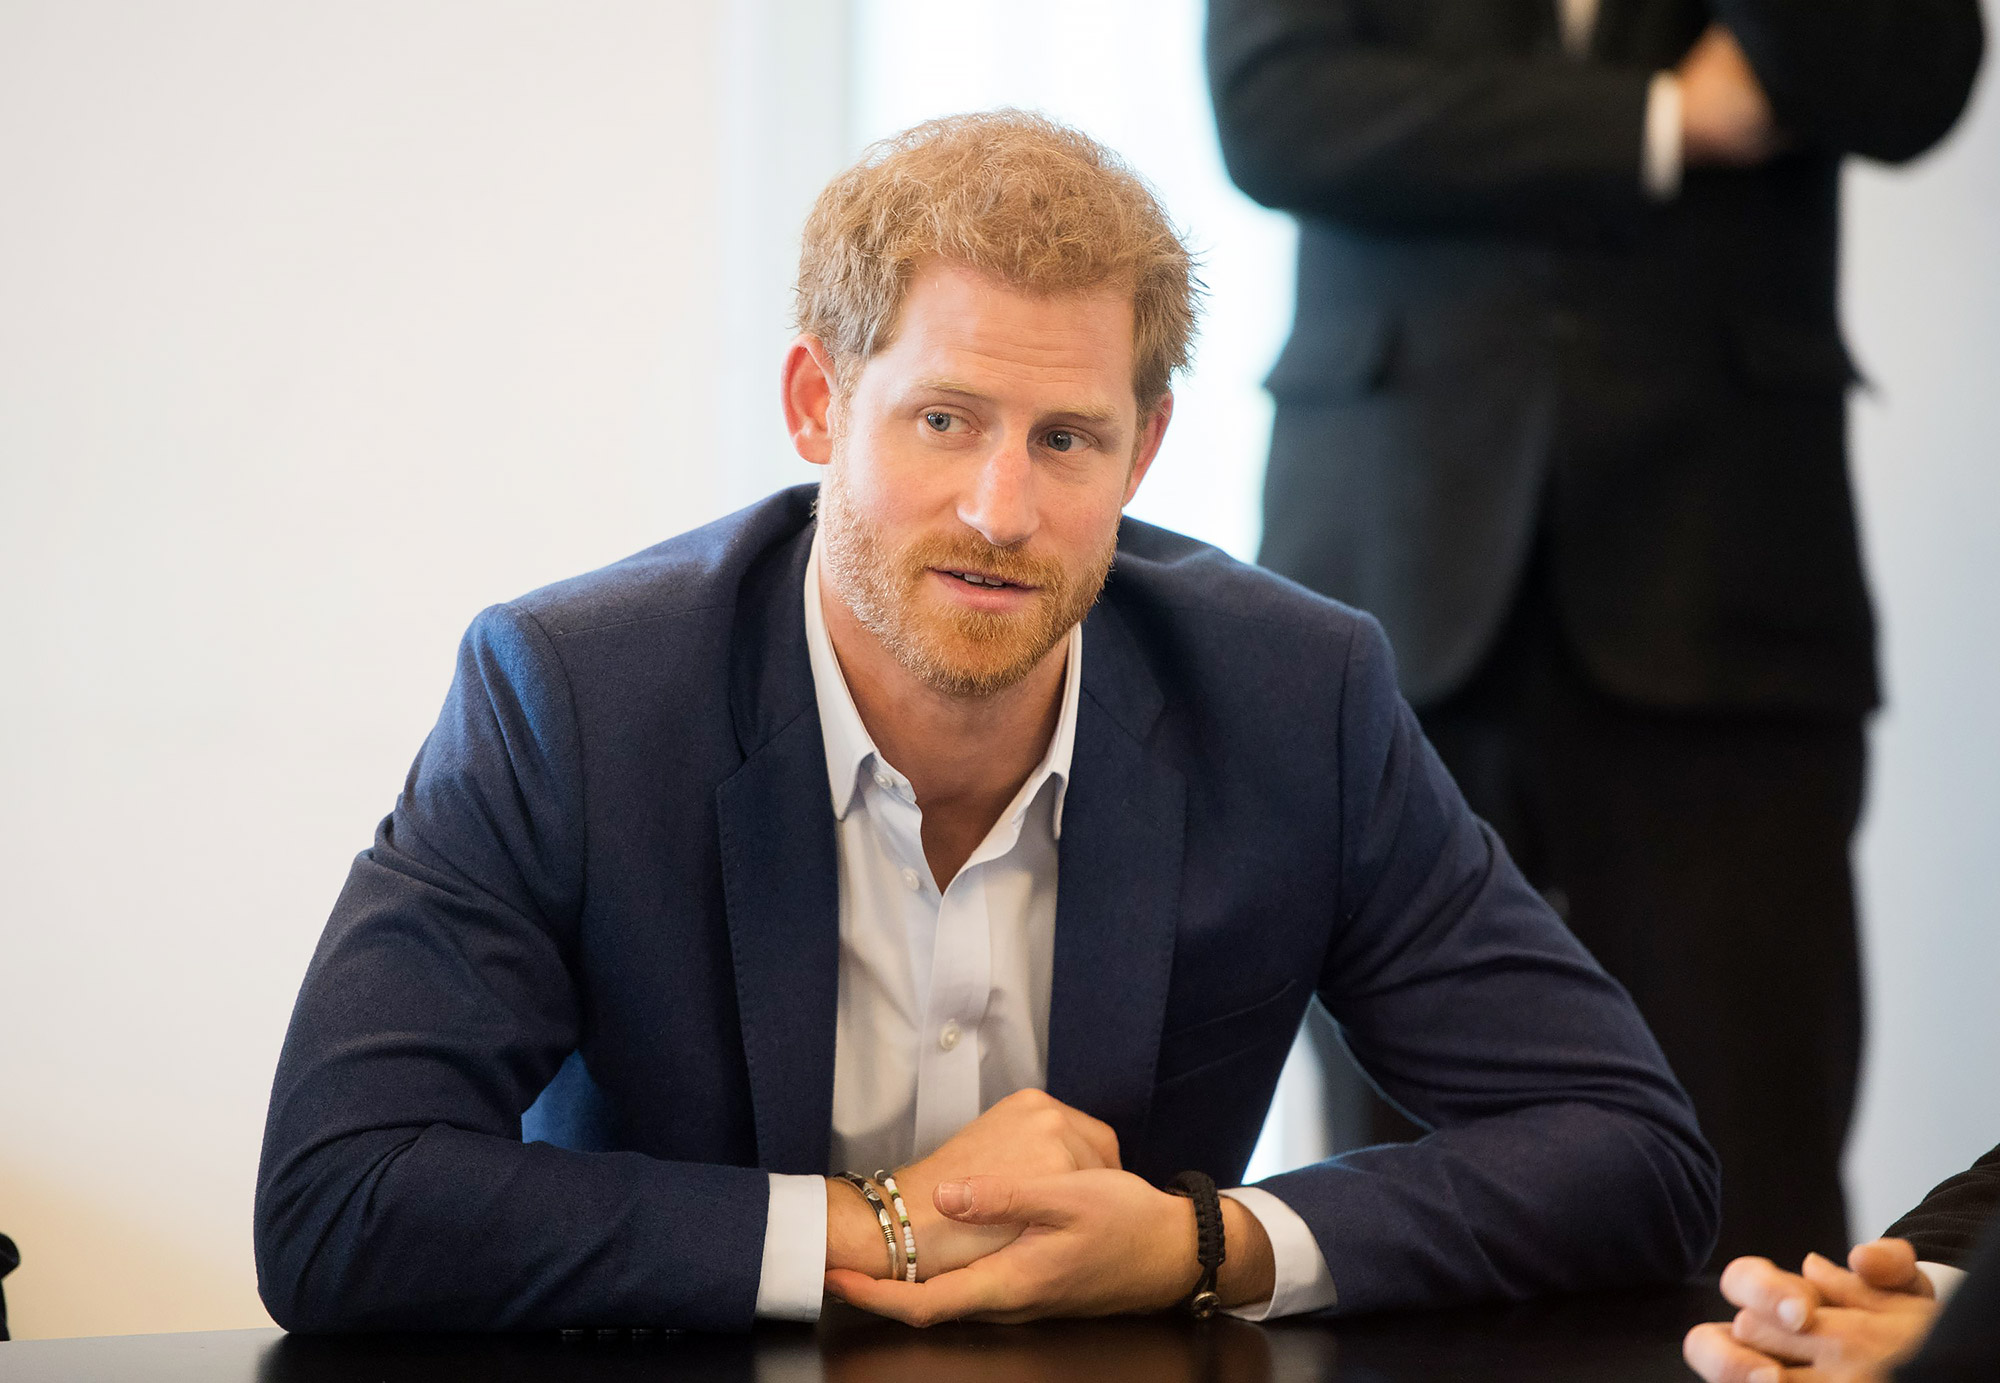 Prince Harry visit to Denmark - 26 Oct 2017